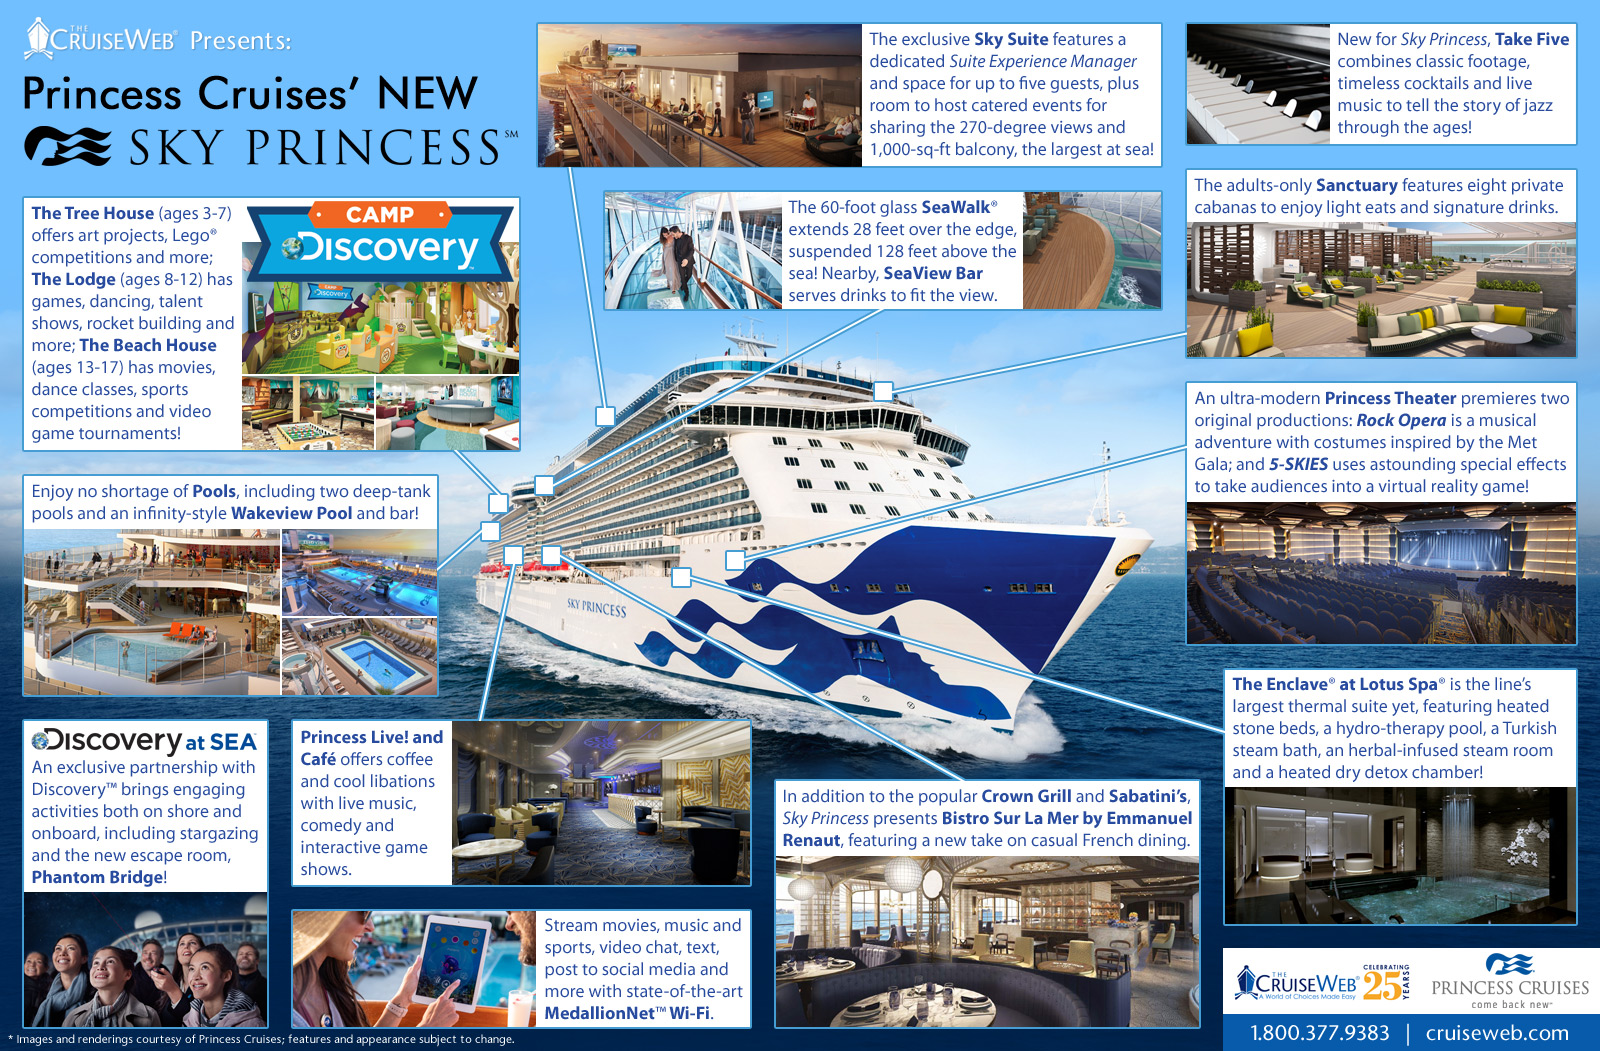 Princess Cruises' New Sky Princess: An Infographic